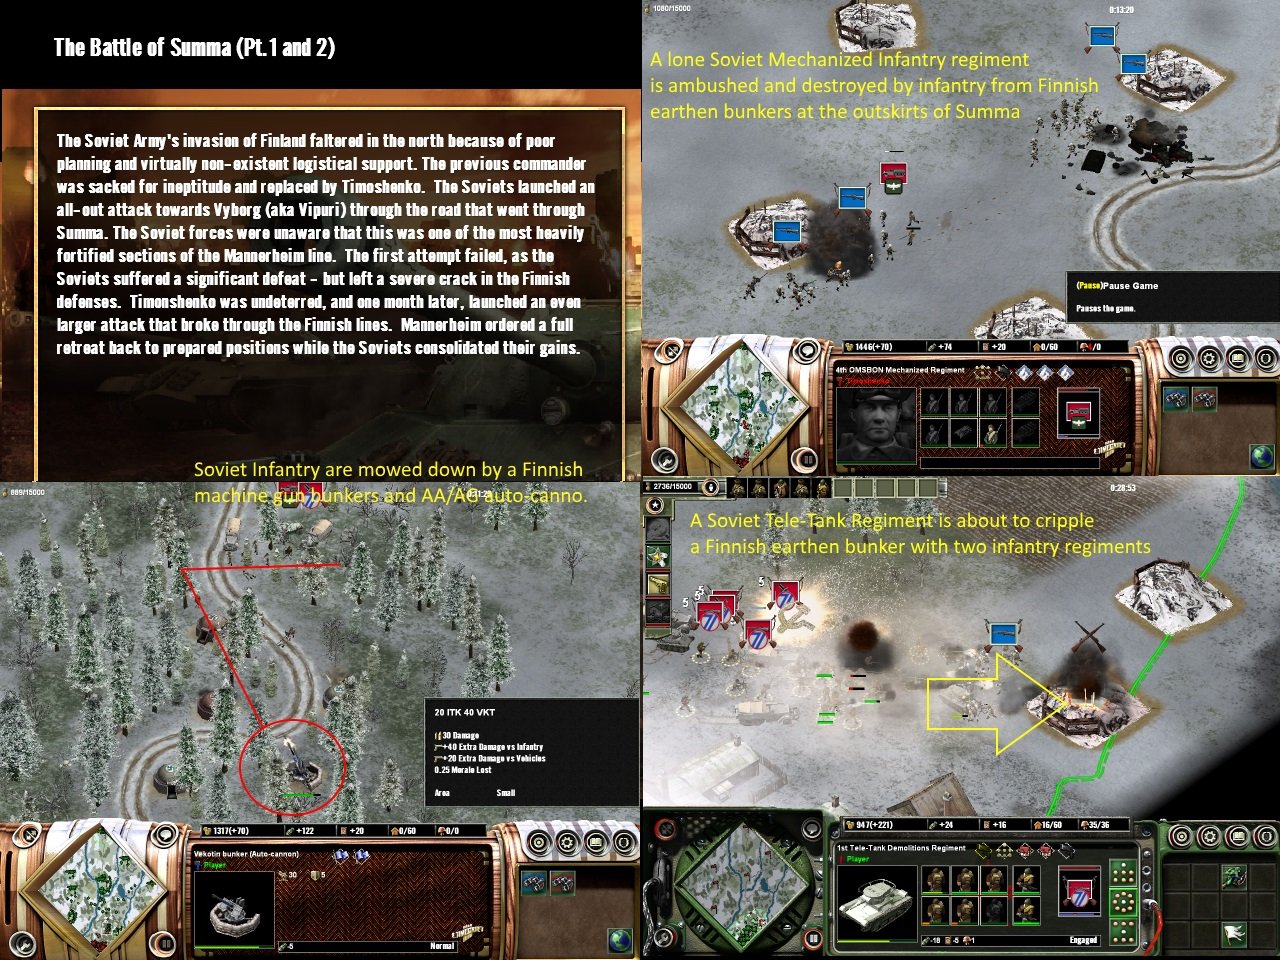 Battle of Summa image - Axis & Allies: Uncommon Valor mod for Axis